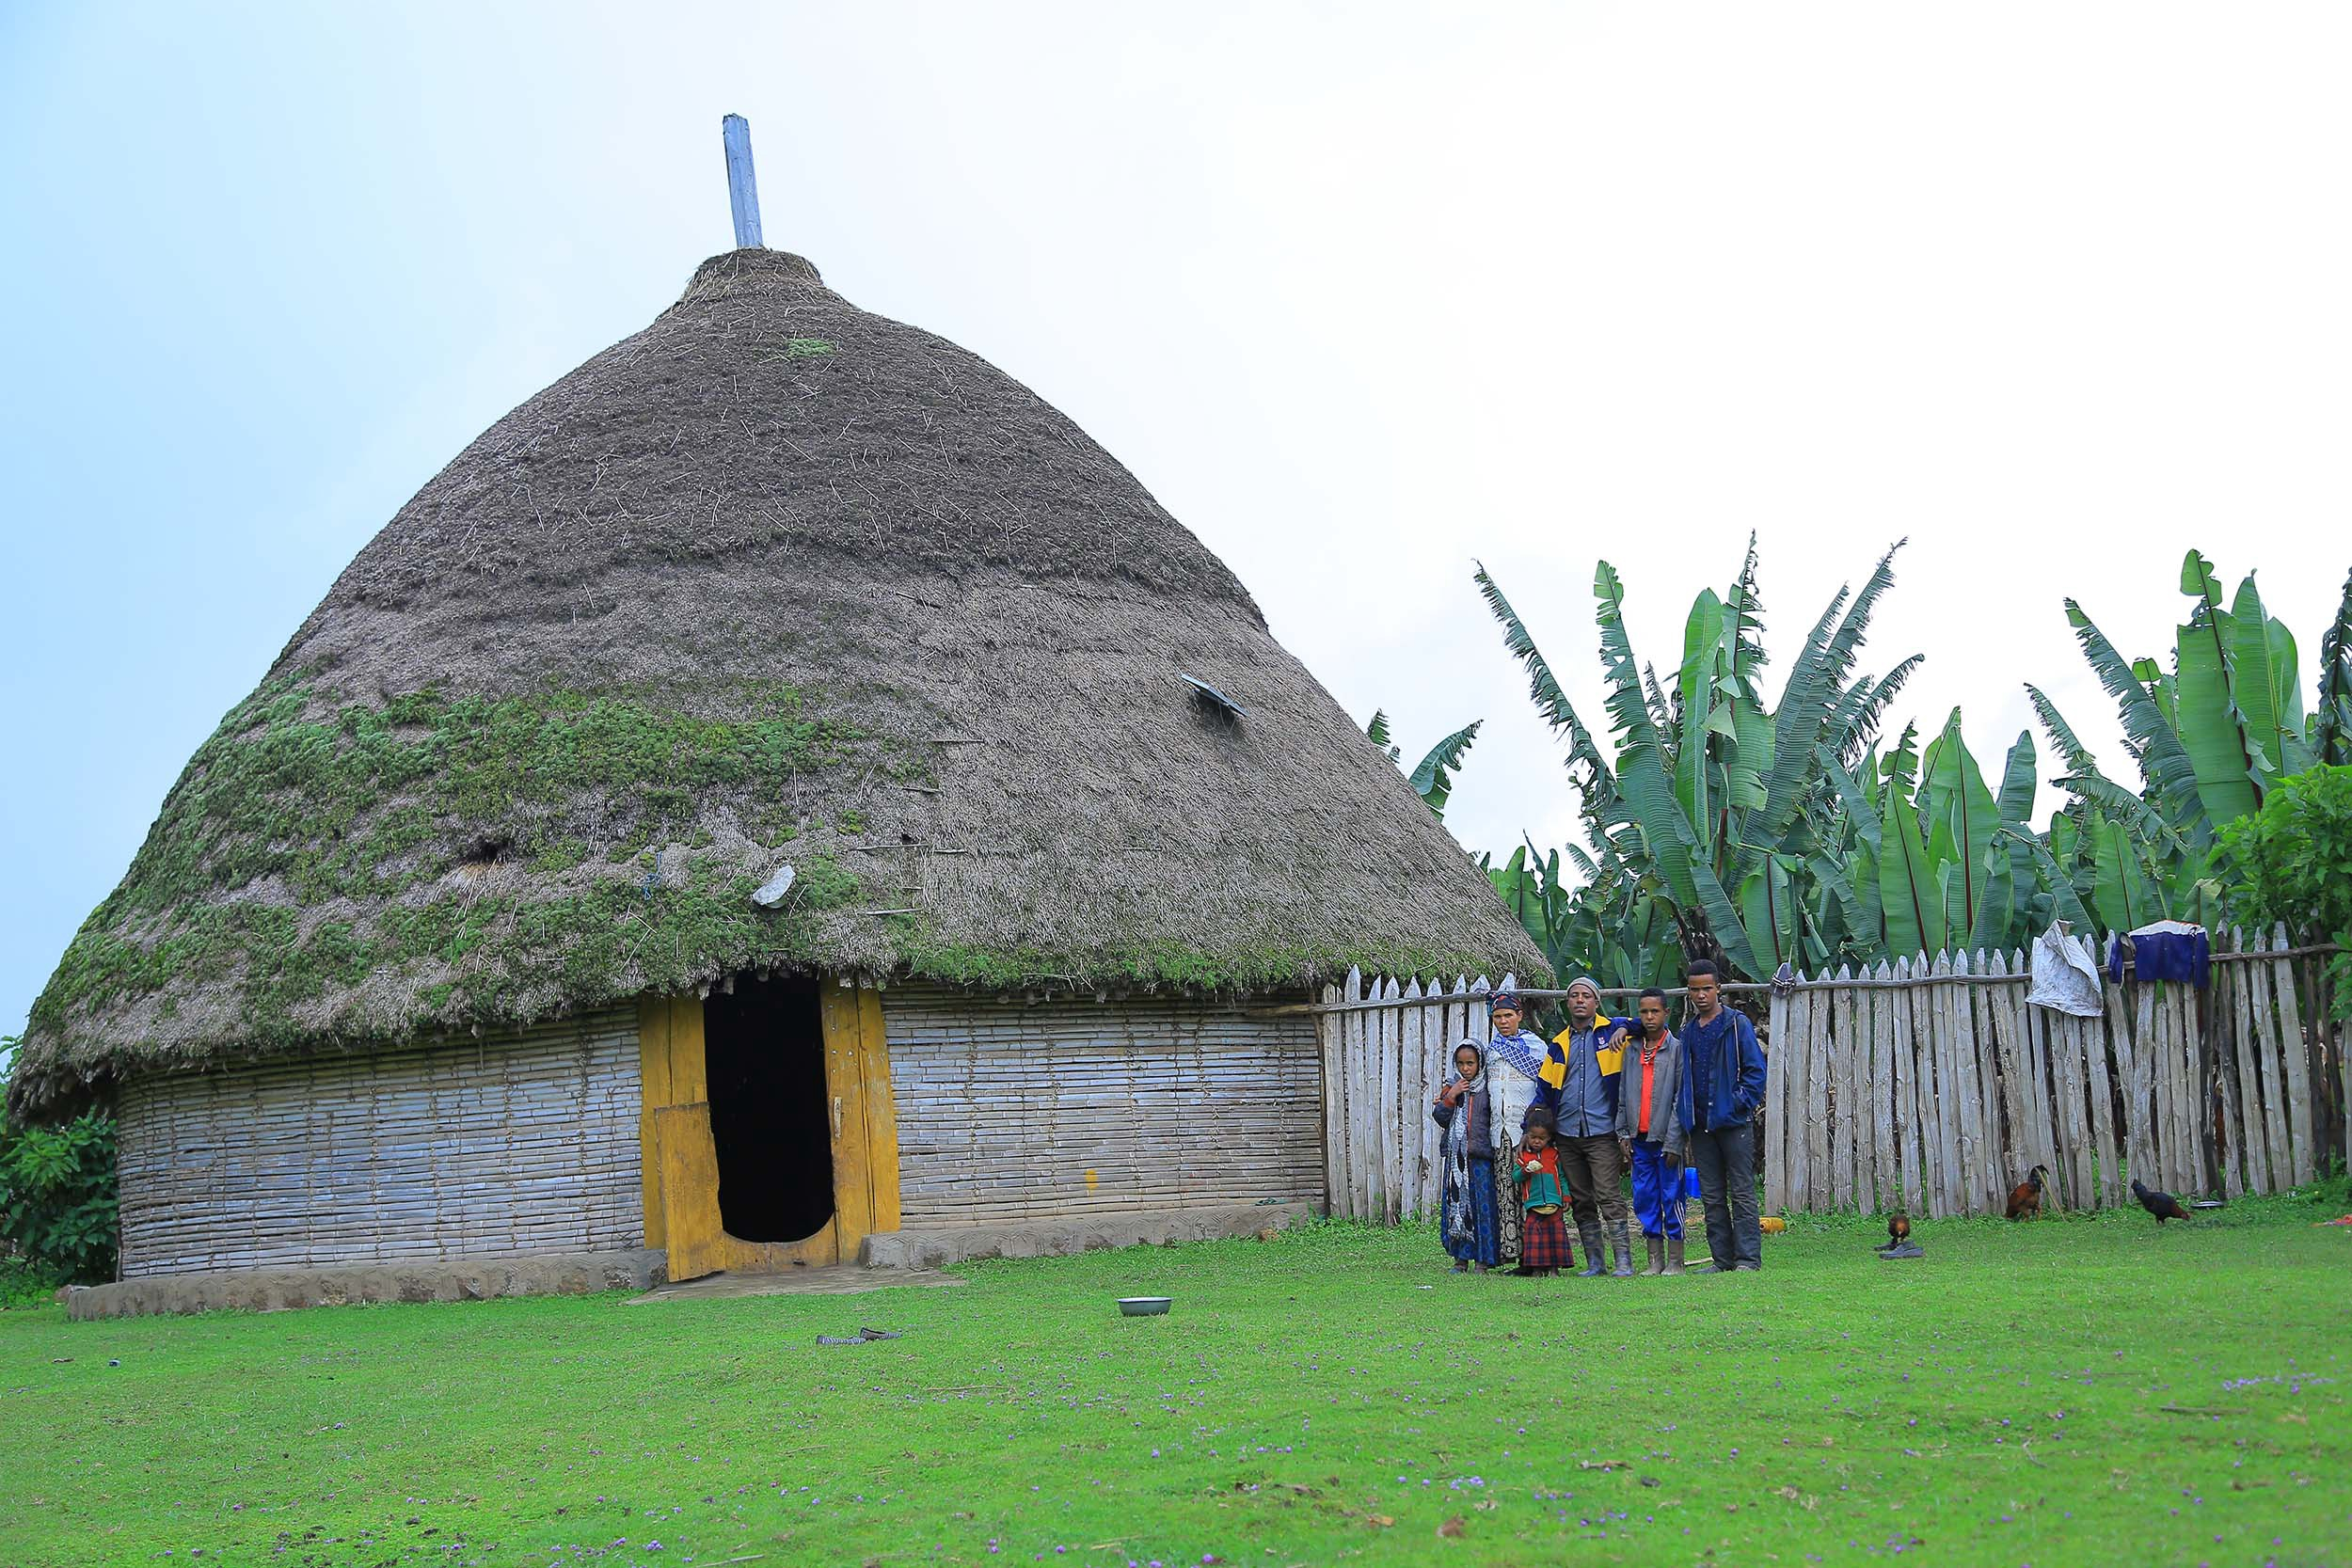 Nega is providing a solar home system for his children to encourage them in their education.